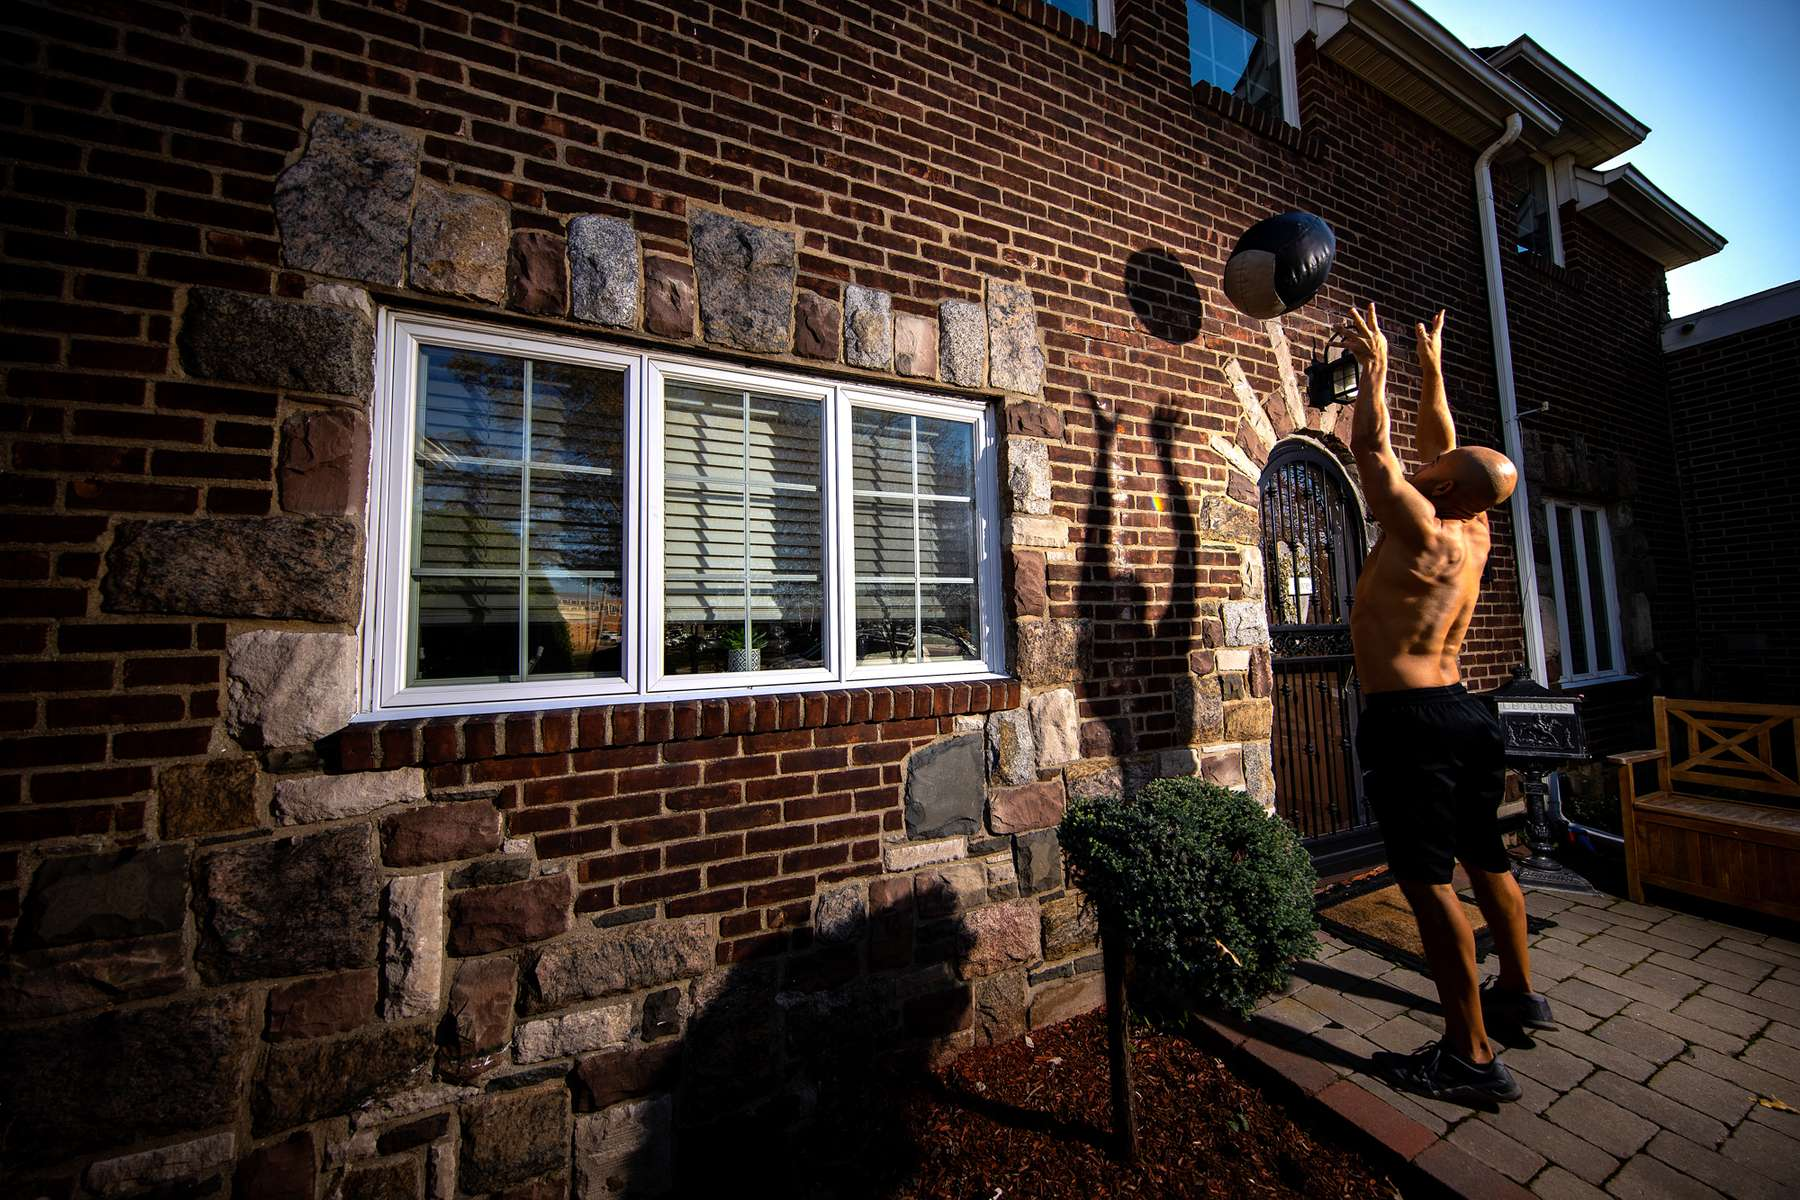 Loneil Jenkins exercises in front of his home with his virtual Fitness Trainer Dennis Guerrero on November 9th, 2020 in Oceanside, New York.  In March of 2014, Dennis Guerrero and his business partner opened a gym on Long Island. The pair shared a passion for fitness, a dream of creating a local community of like-minded people and a willingness to take a risk. Over the next six years, hundreds of members experienced and embraced a unique environment that fostered a palpable energy, helping athletes of all ages and abilities reach their potential.  The gym became a place to share achievements, work through losses and overcome illness. But like so many other businesses, it seemingly had no way of overcoming the financial impact and ongoing uncertainty of a global pandemic. With the arrival of Covid-19, the gym shut its doors back in March, with no idea when it would reopen. The owners, though, were far from done. They lent out every piece of equipment they owned to the gym's members, continued to pay their staff and worked to set up outdoor classes in hopes of keeping their membership active and healthy. As the shutdown stretched on, it became clear that the physical gym was closed for good.  They have since reinvented themselves and are now called Life Outside the Box.  Their business model has changed drastically, and all their workouts have gone virtual.  The workouts are conducted by a small group of fitness trainers led by Guerrero.  The members pay a monthly fee and can take live Zoom fitness classes.  They are coached by the virtual trainers in real time.  More and more people have reconstructed their garages, spare rooms, backyards, and basements into home gyms since the COVID-19 pandemic hit the United States.